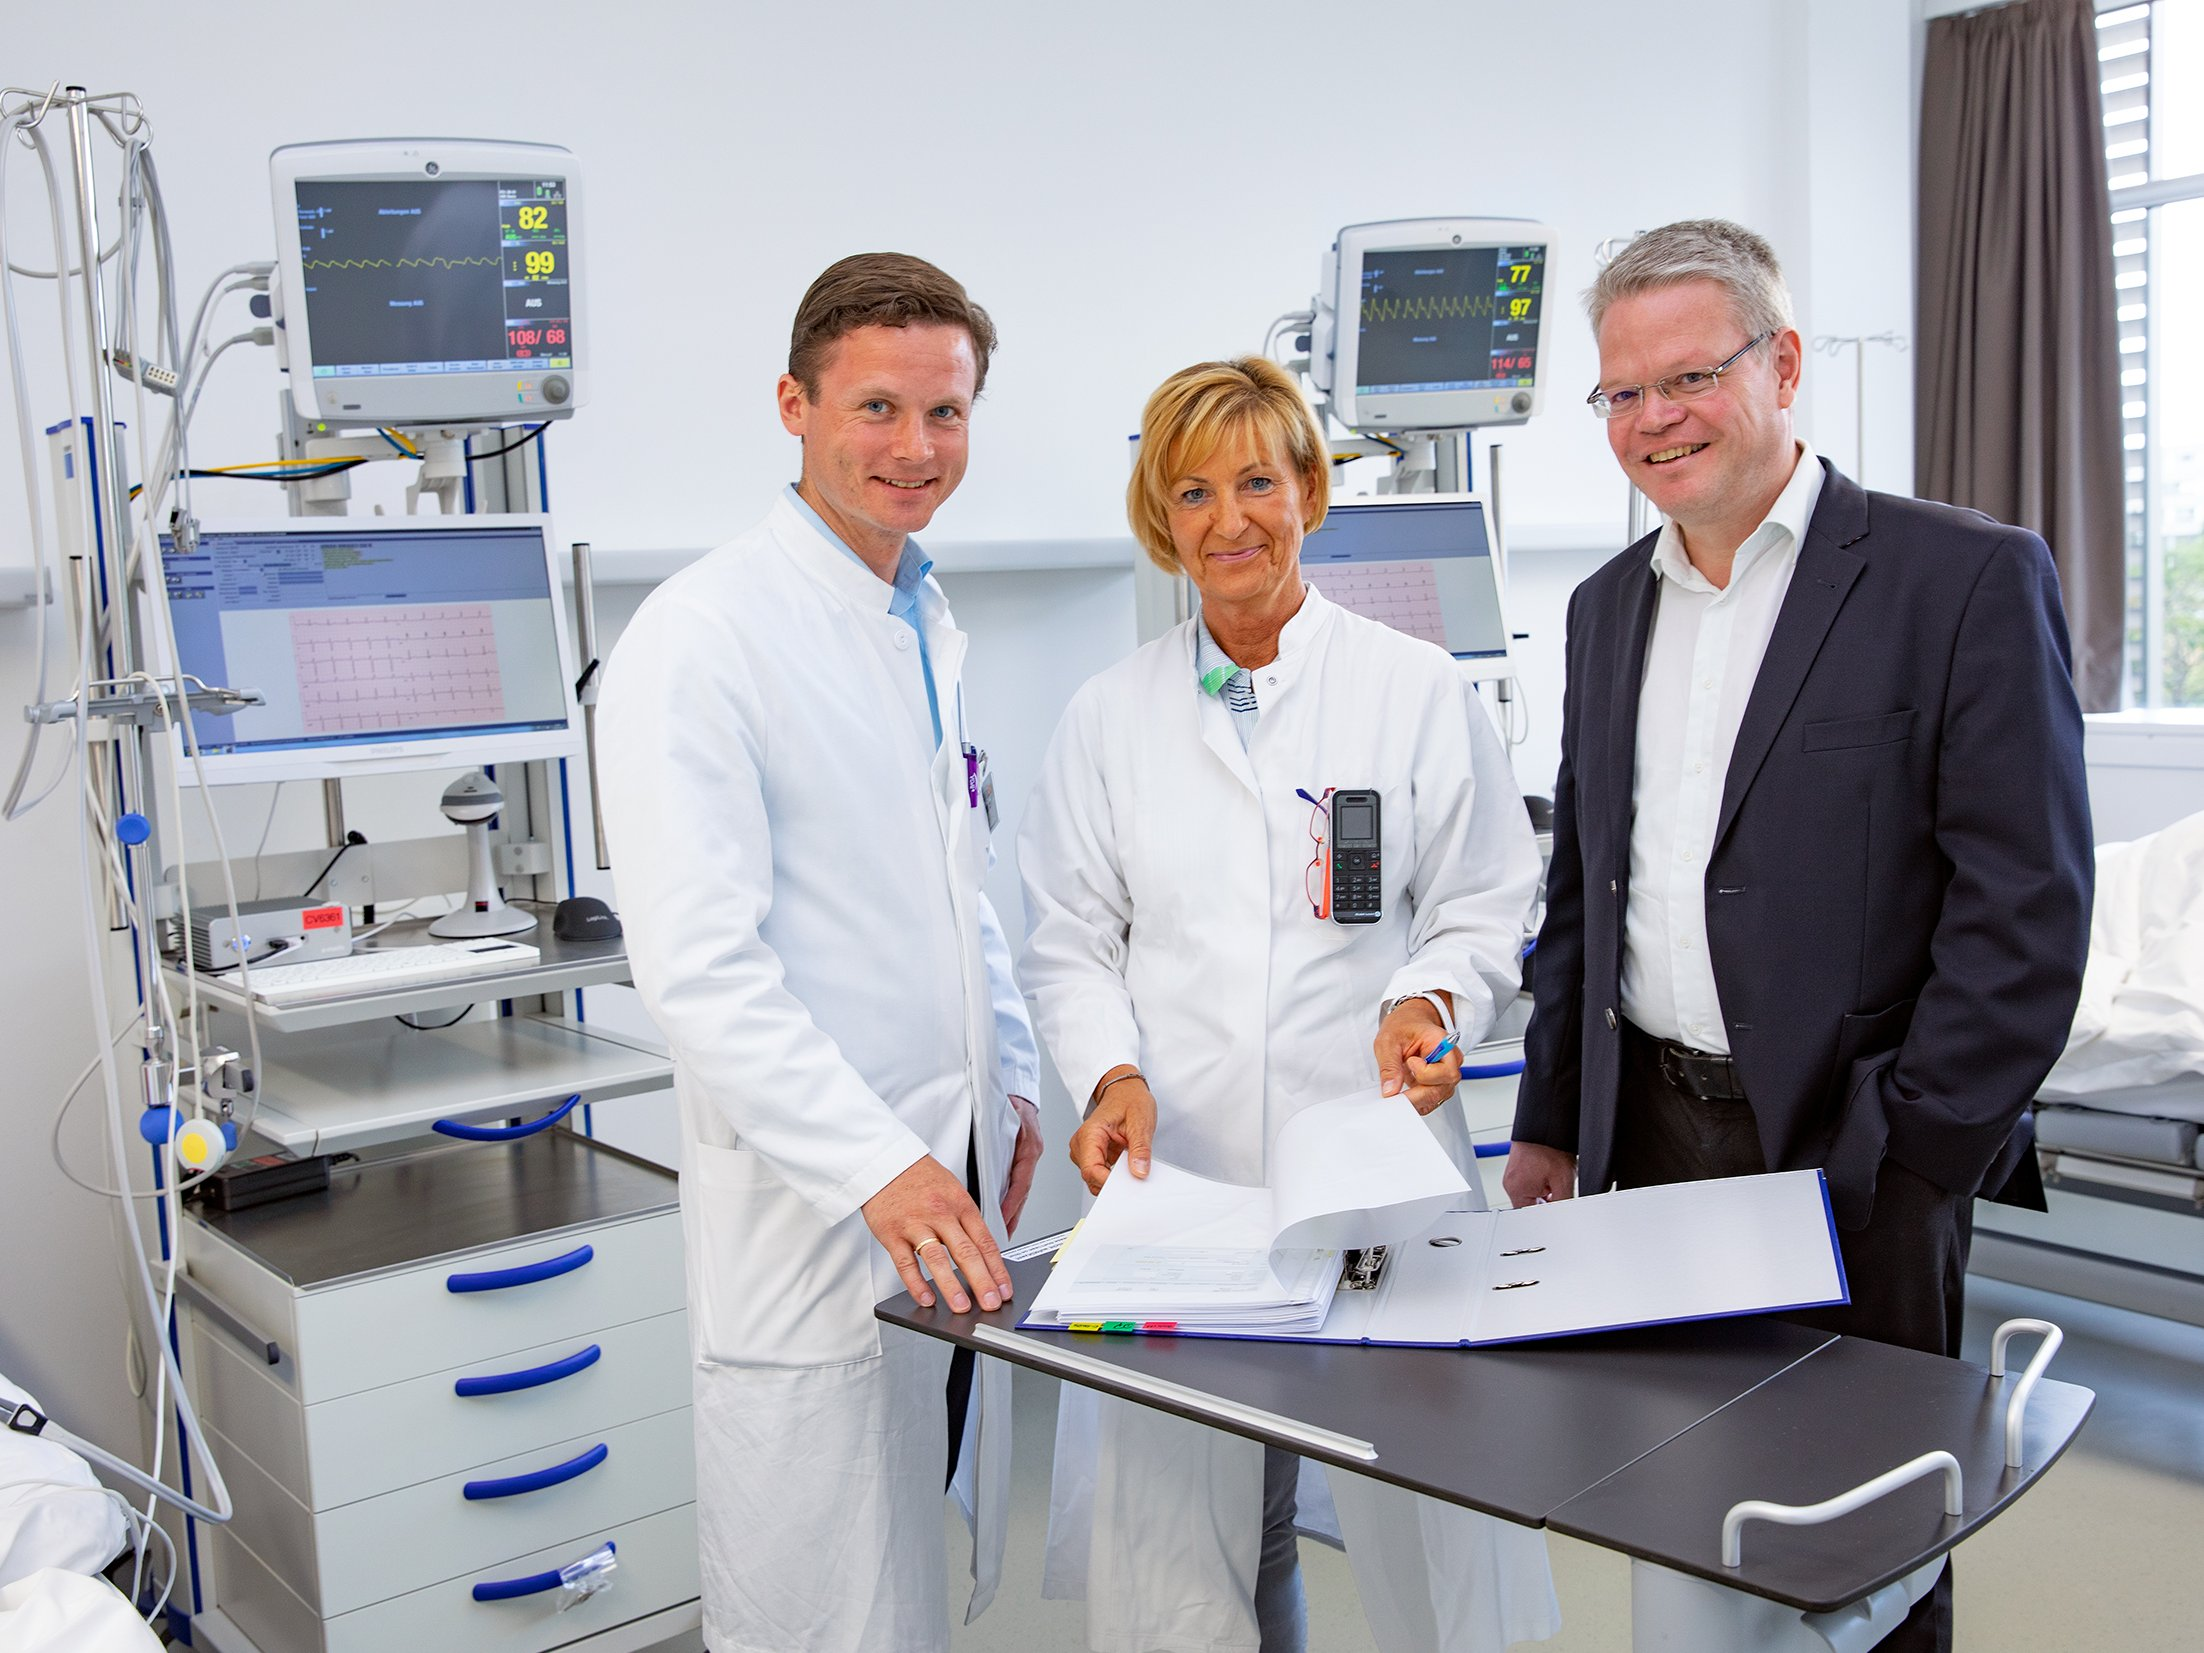 Prof. Dr. Christoph Schindler (from right to left), the head study nurse Carola Westenberg and investigator Dr. Macus May. Copyright: MHH / Karin Kaiser.